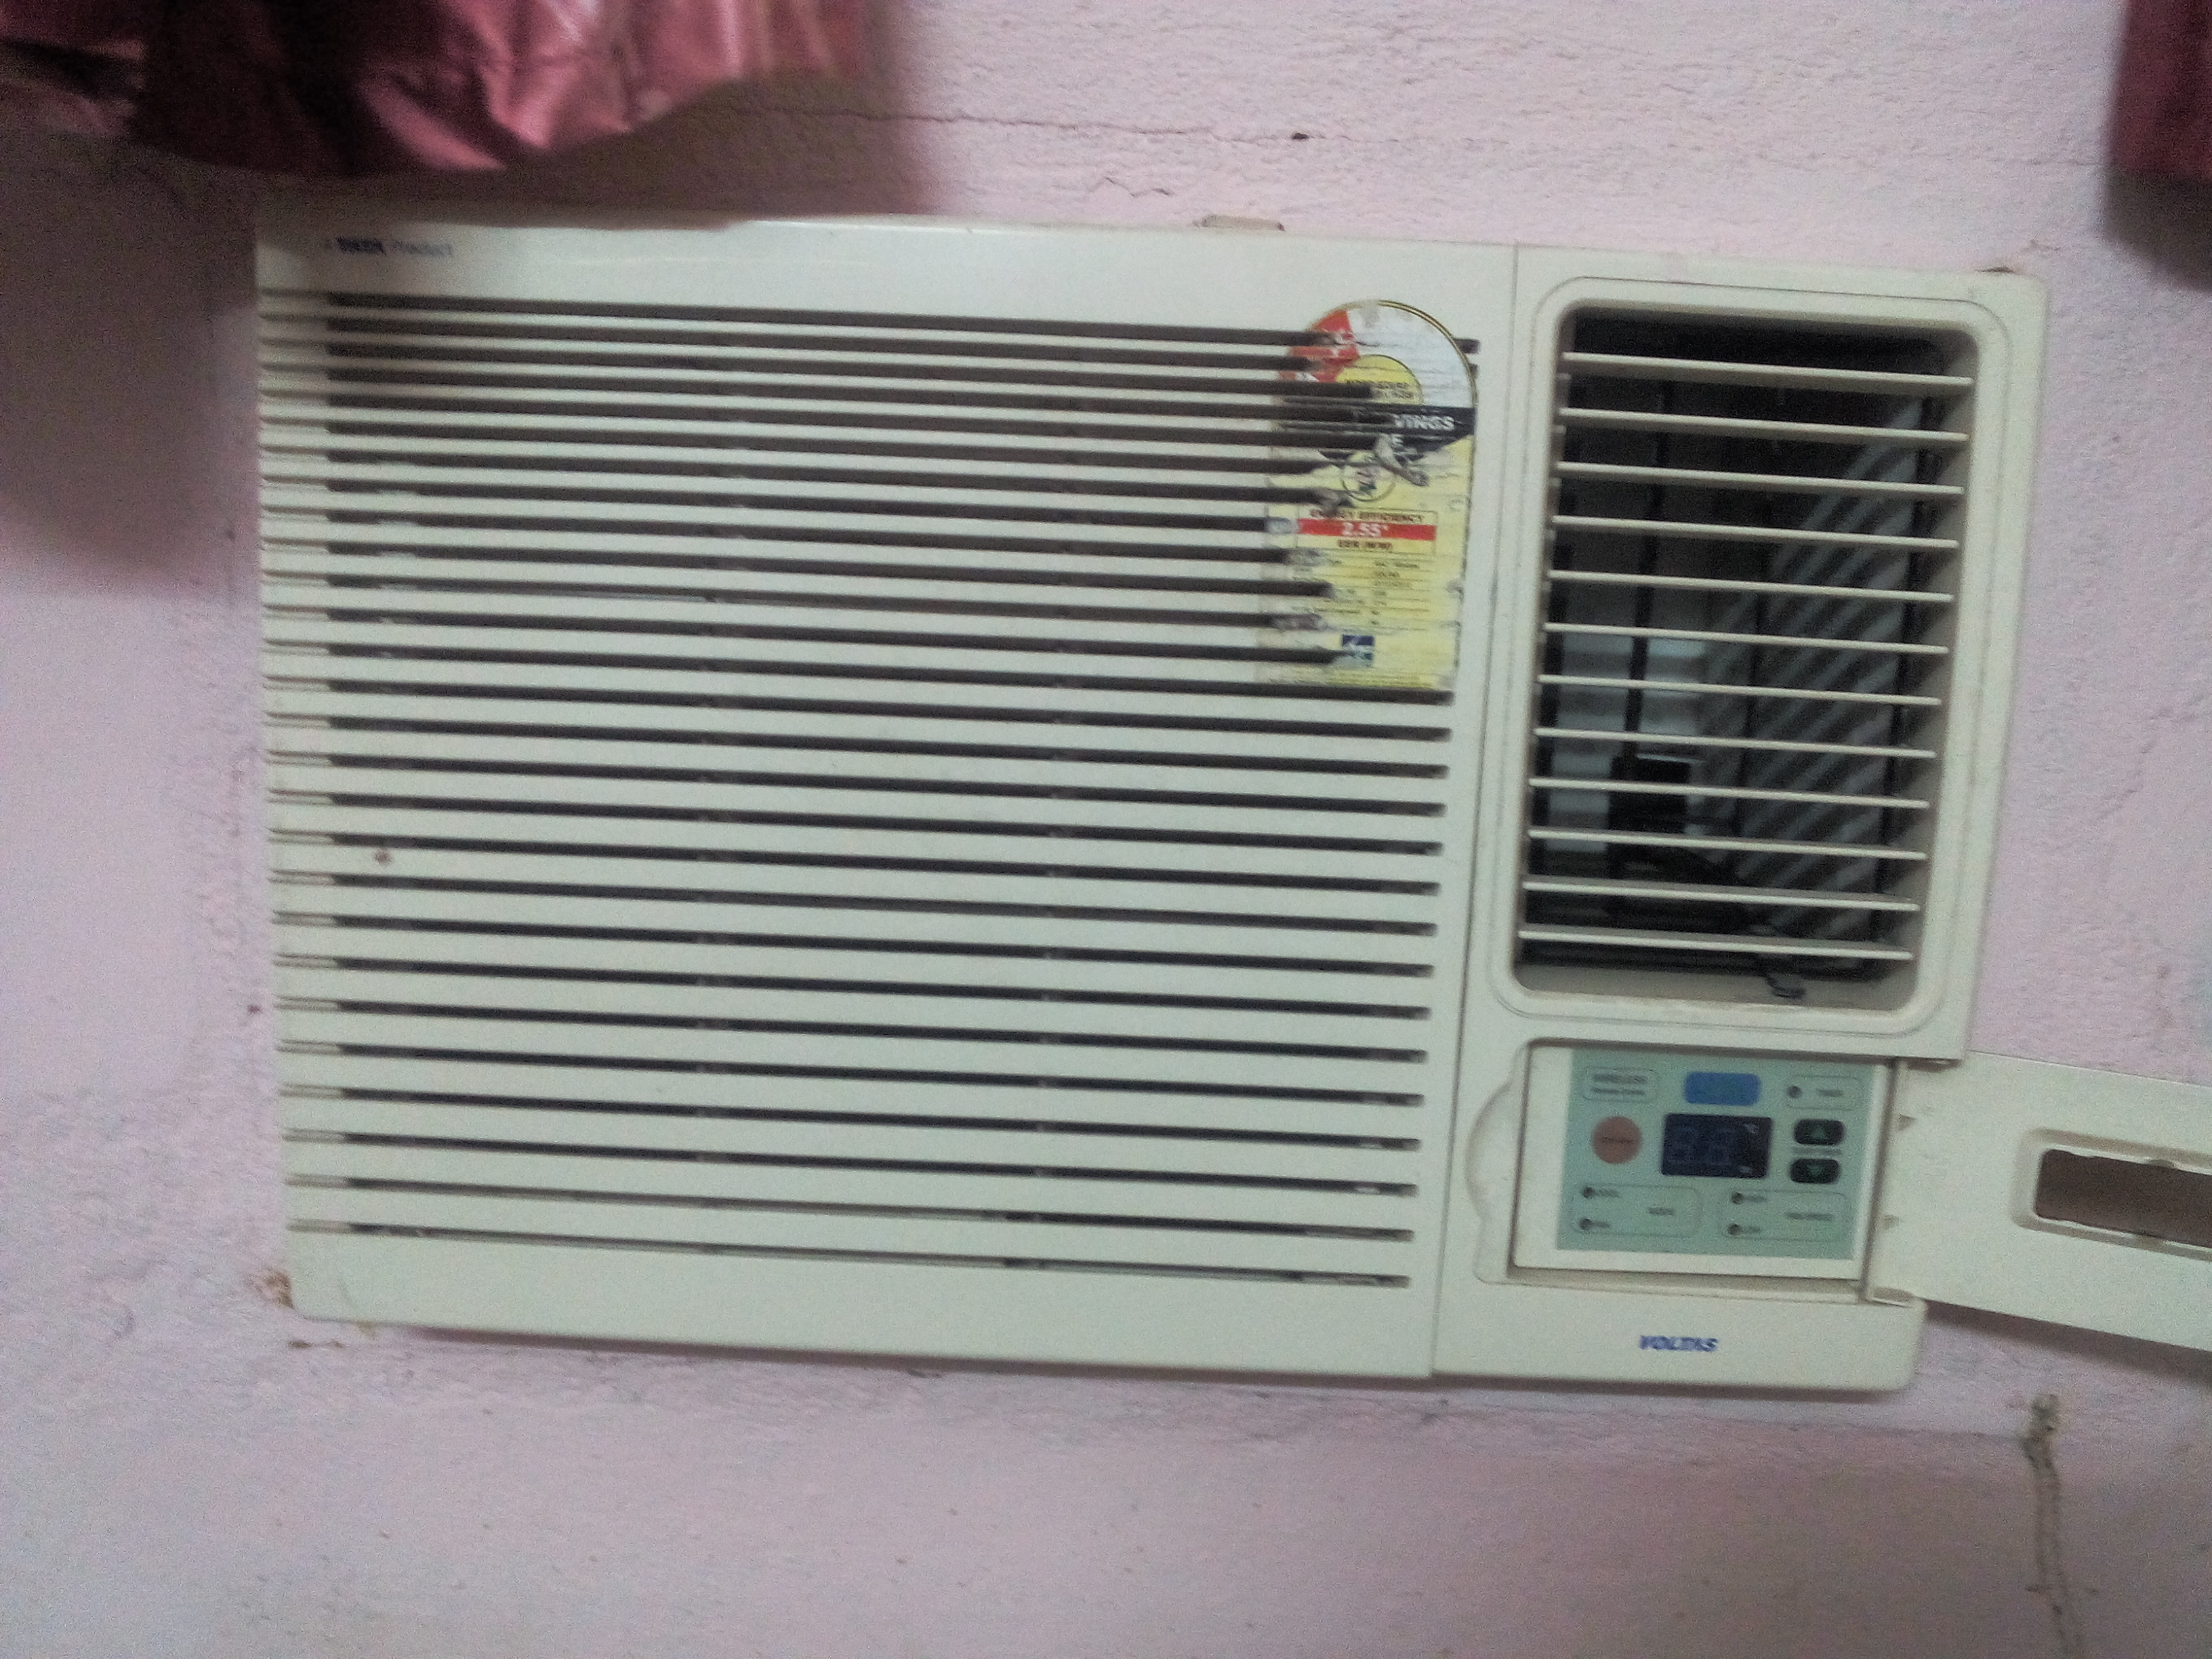 Super cooling voltas 123 ly 1 ton 3 star window ac for 1 ton window ac